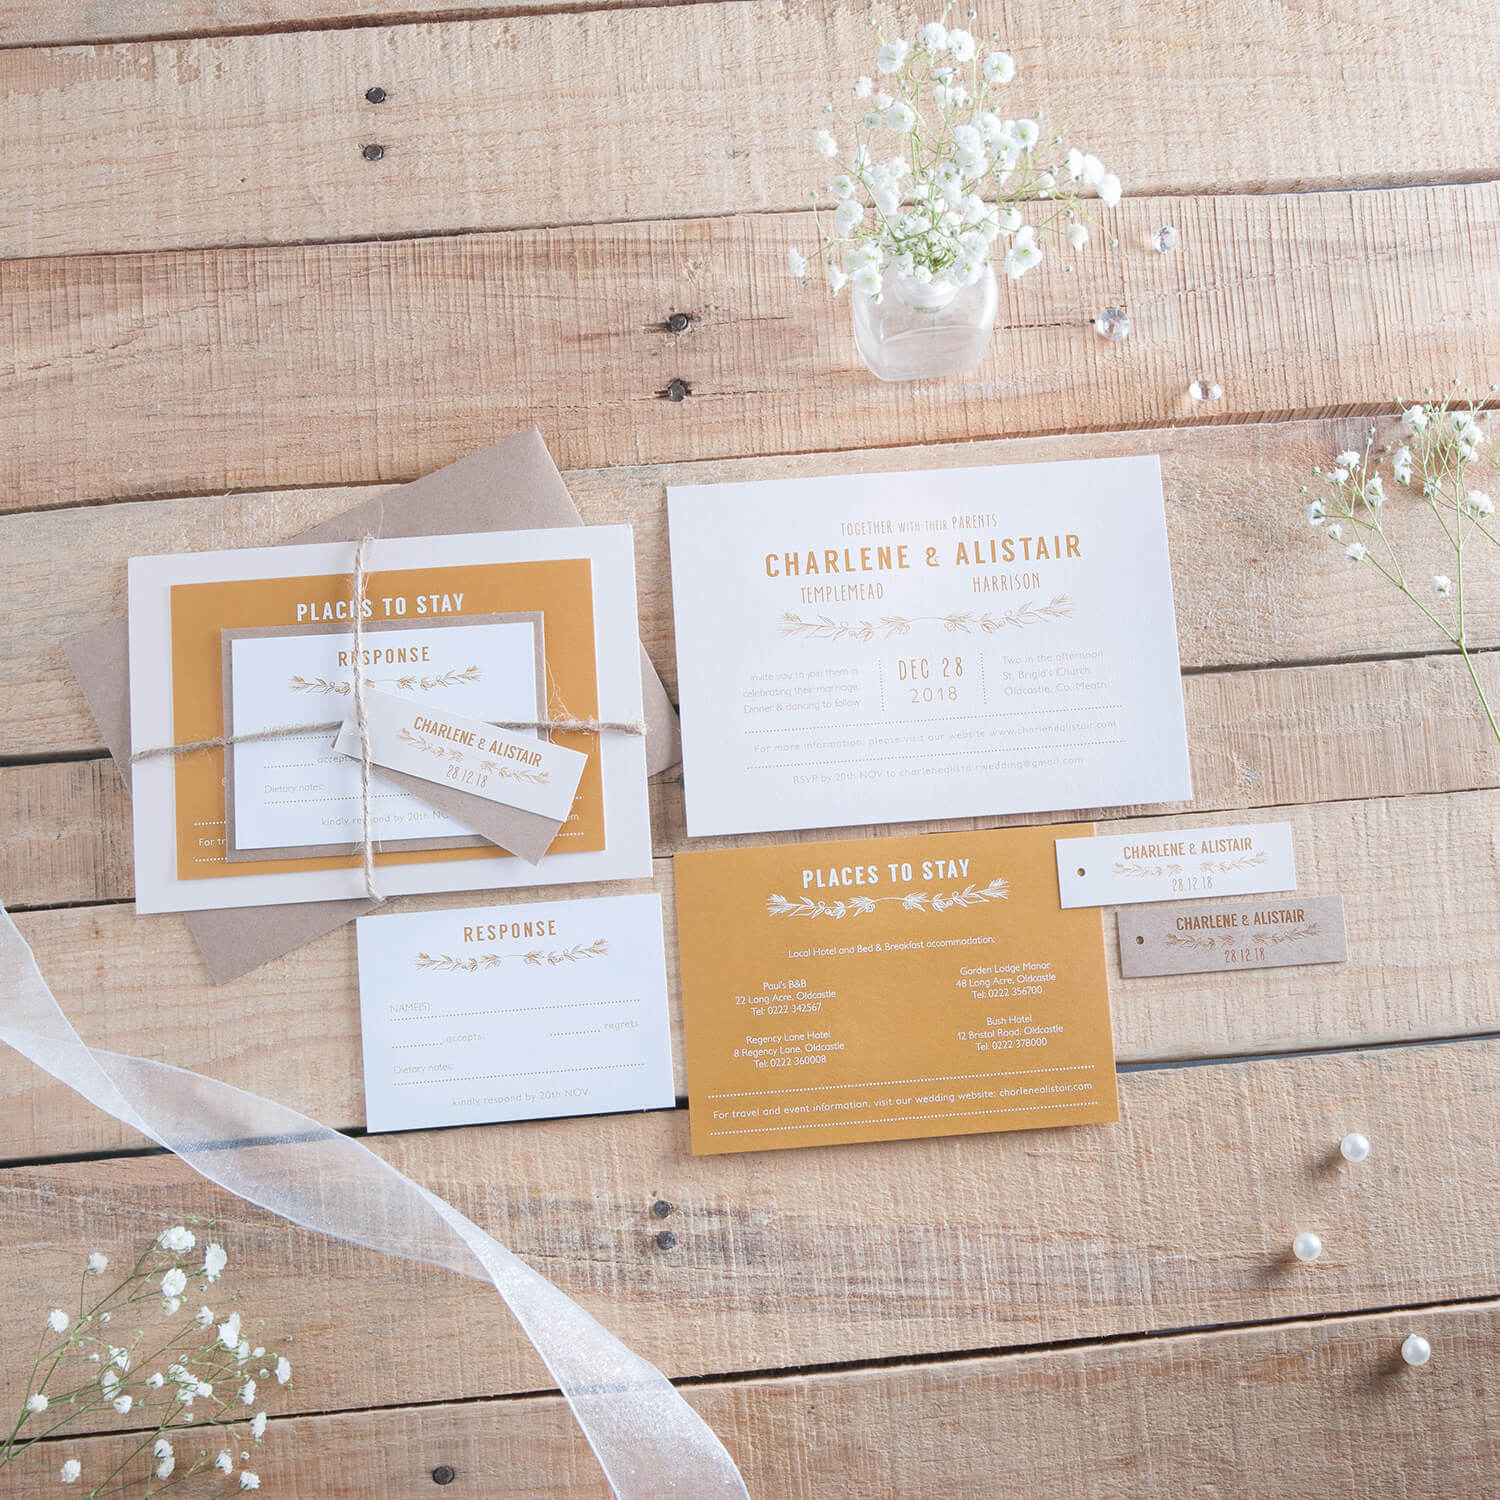 Old pallette used as a background for this wedding stationery photography